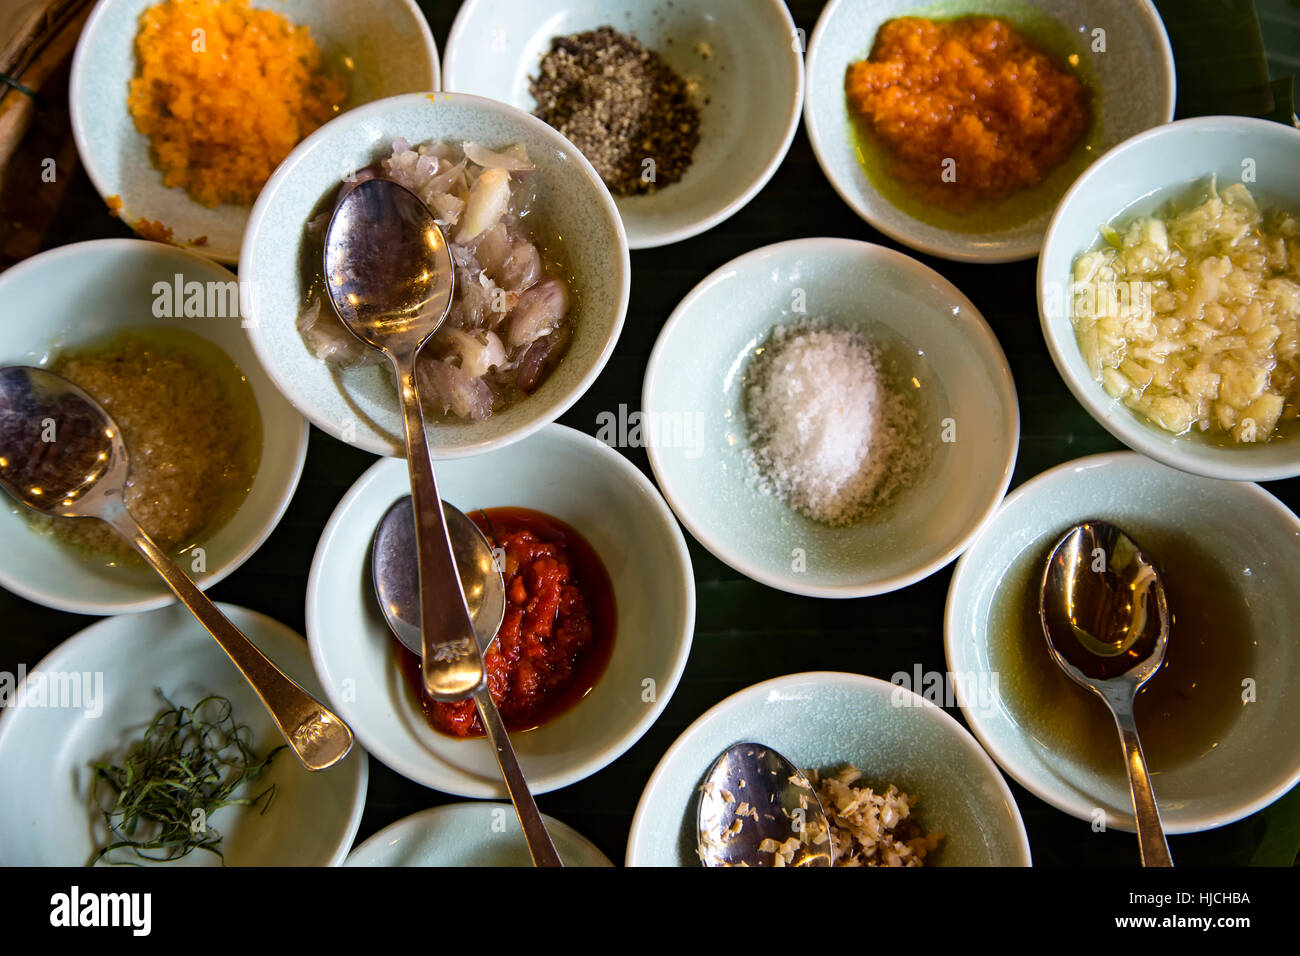 Ingredients for seasoning chicken,  Miss Vy's Cooking Academy, Market Restaurant, Hoi An, Vietnam - Stock Image